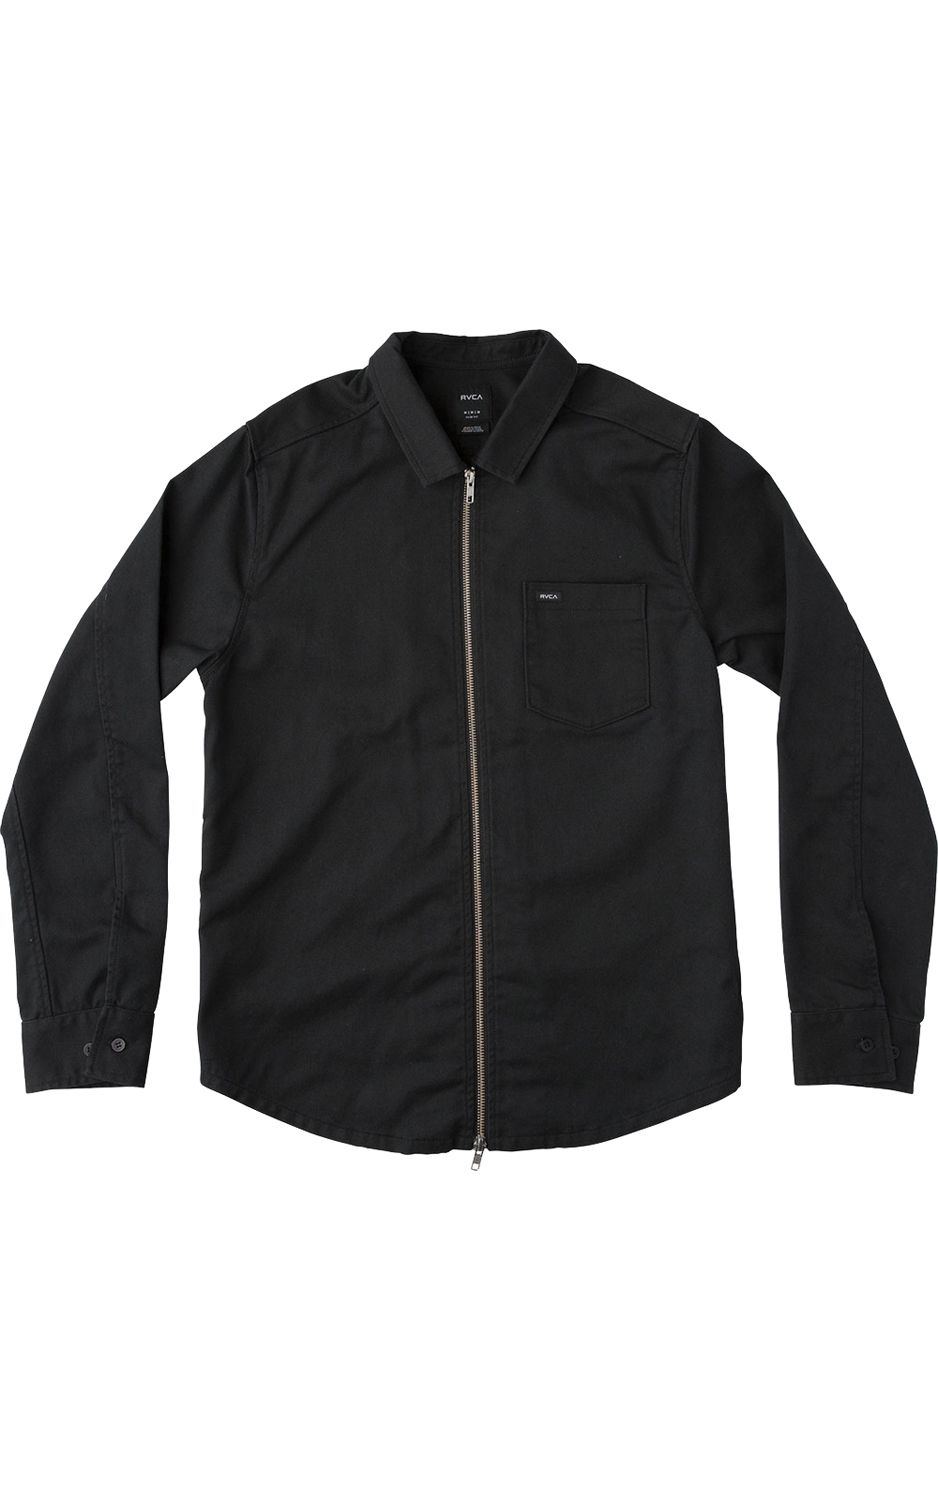 RVCA Shirt HEX Black